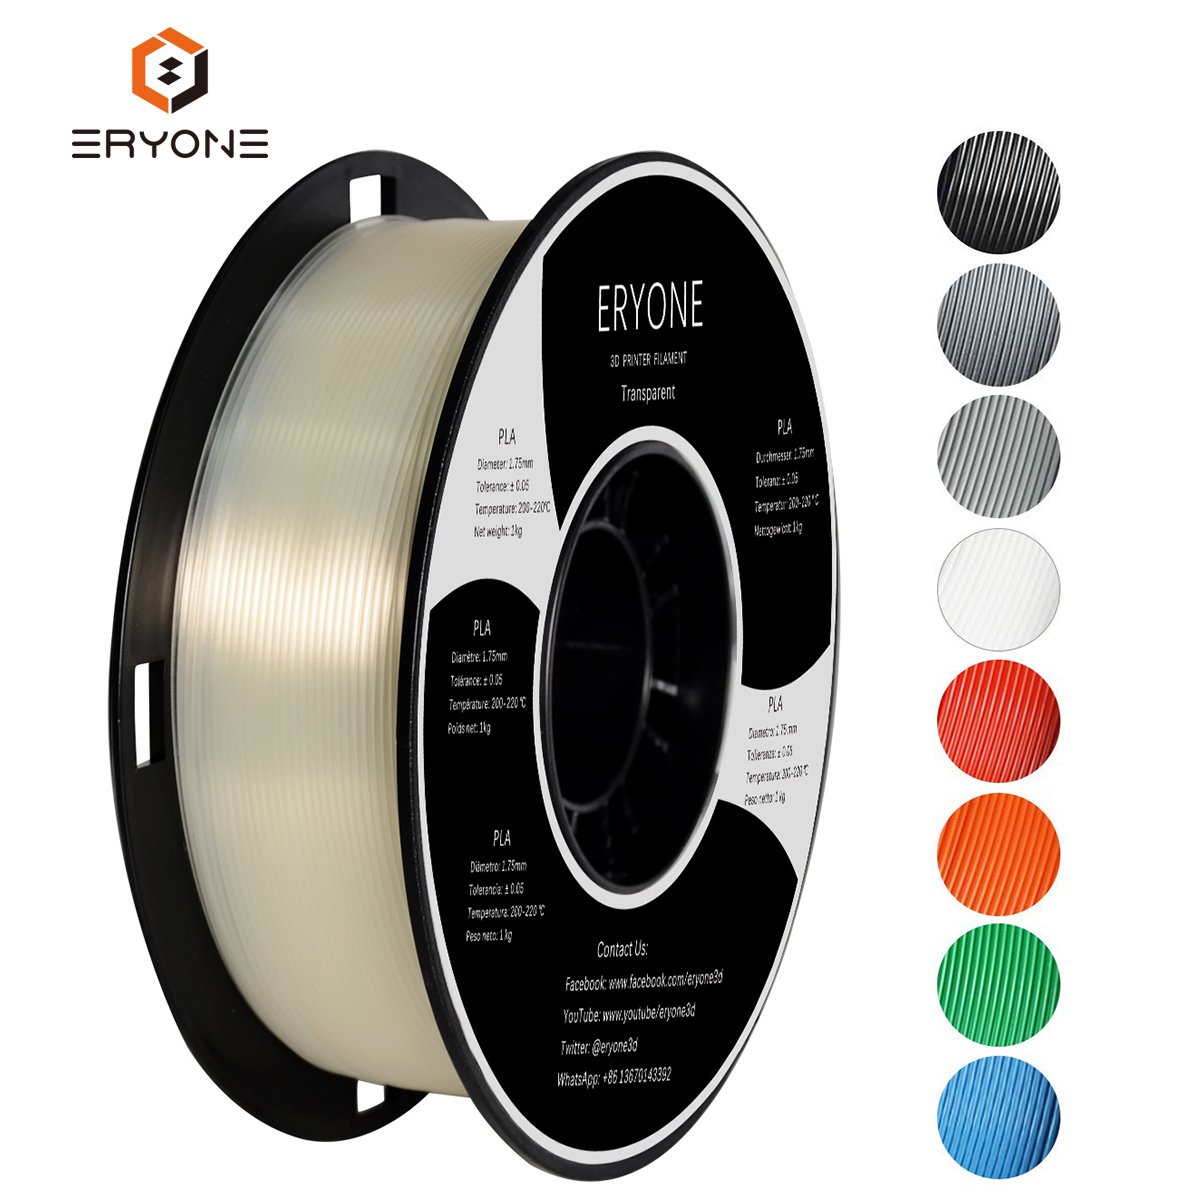 ERYONE PLA Filament 1.75mm, 3D Impression Filament PLA pour 3D imprimante, 1kg 1 Bobine Transparente